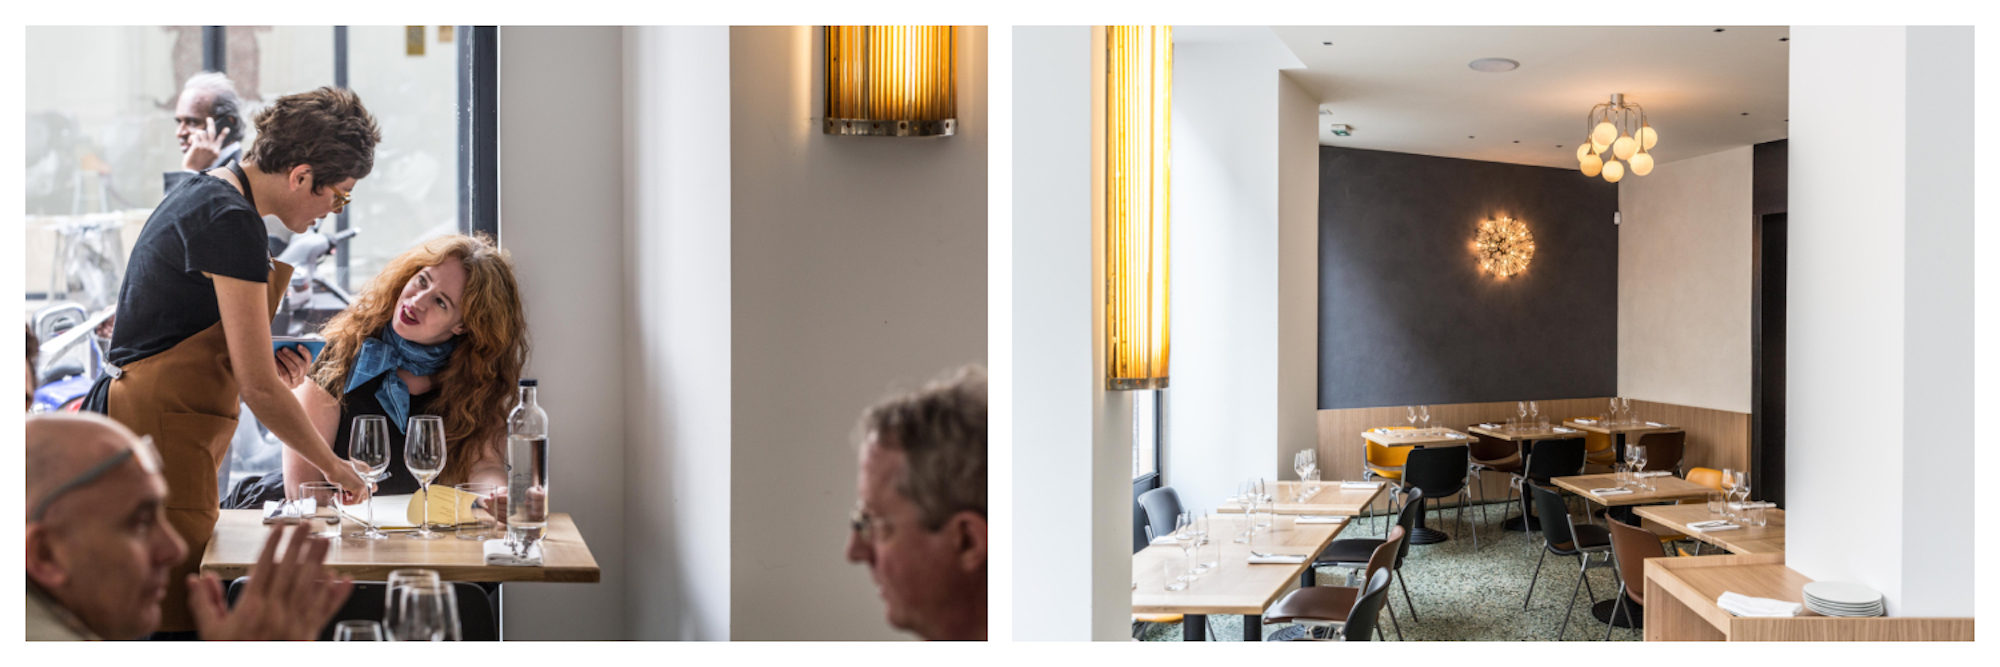 HiP Paris Blog reviews the Italian restaurant Passerini where the Italian staff is friendly (left) and the interiors of natural materials like wood and terrazzo floors are simple and soothing (right).